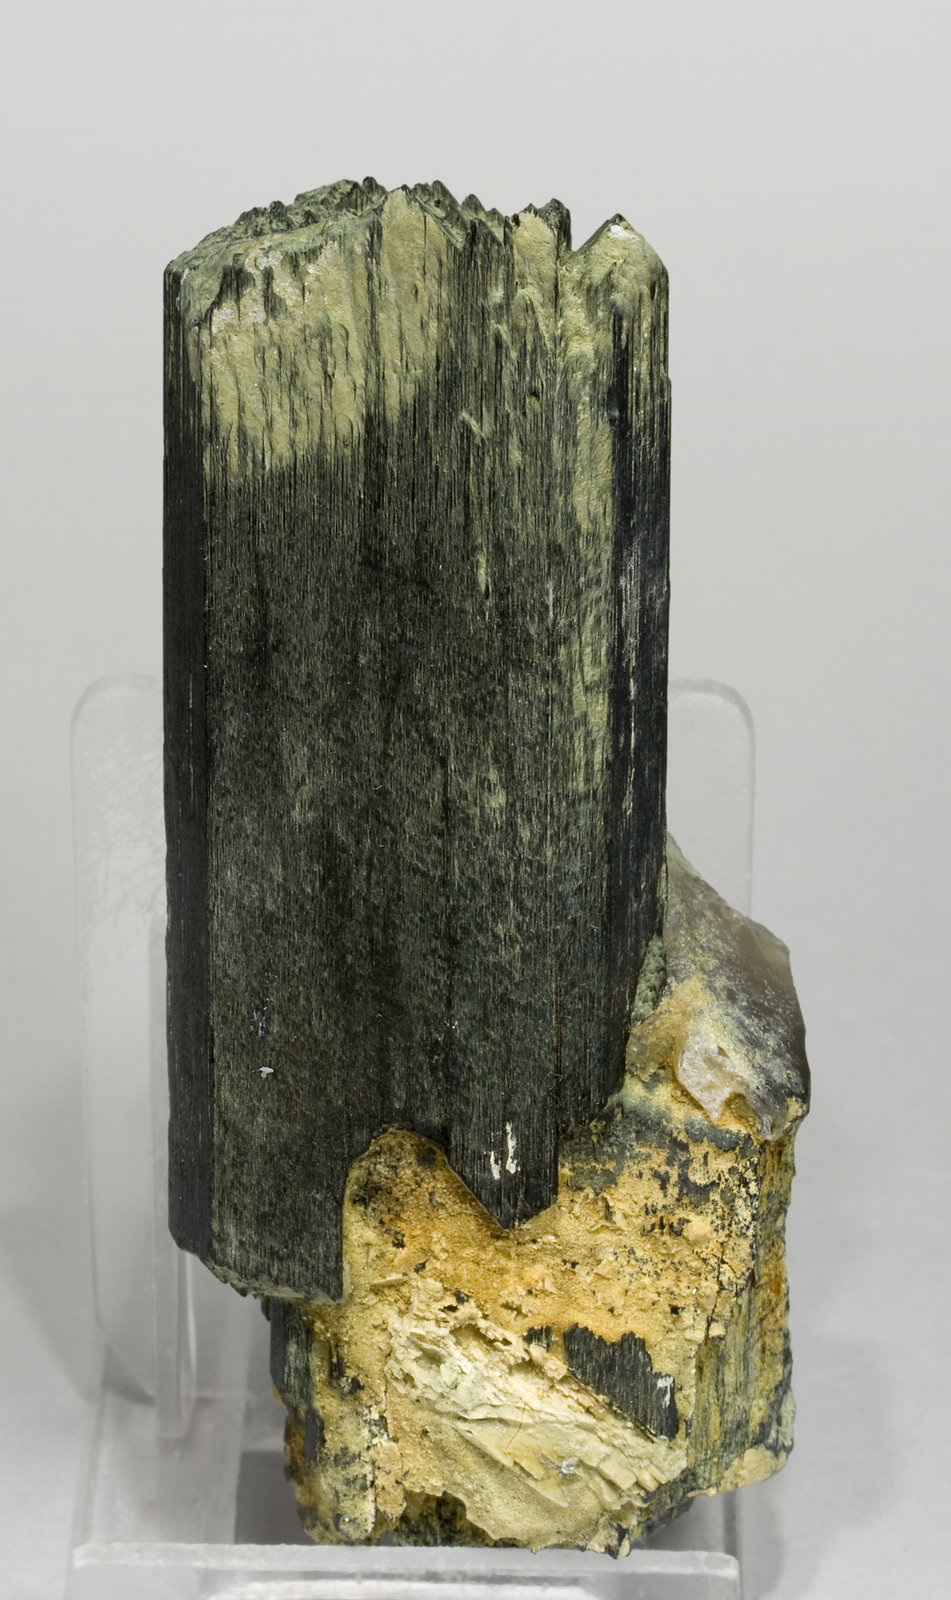 specimens/s_imagesT7/Arfvedsonite-MA6T7f.jpg